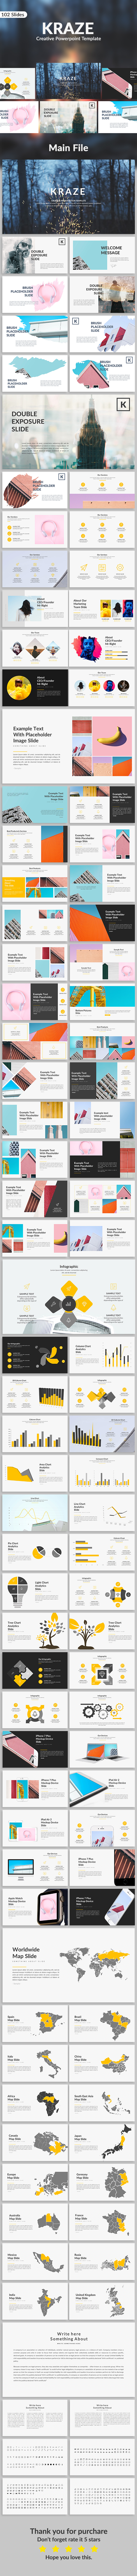 Kraze - Creative Keynote Template - Creative Keynote Templates